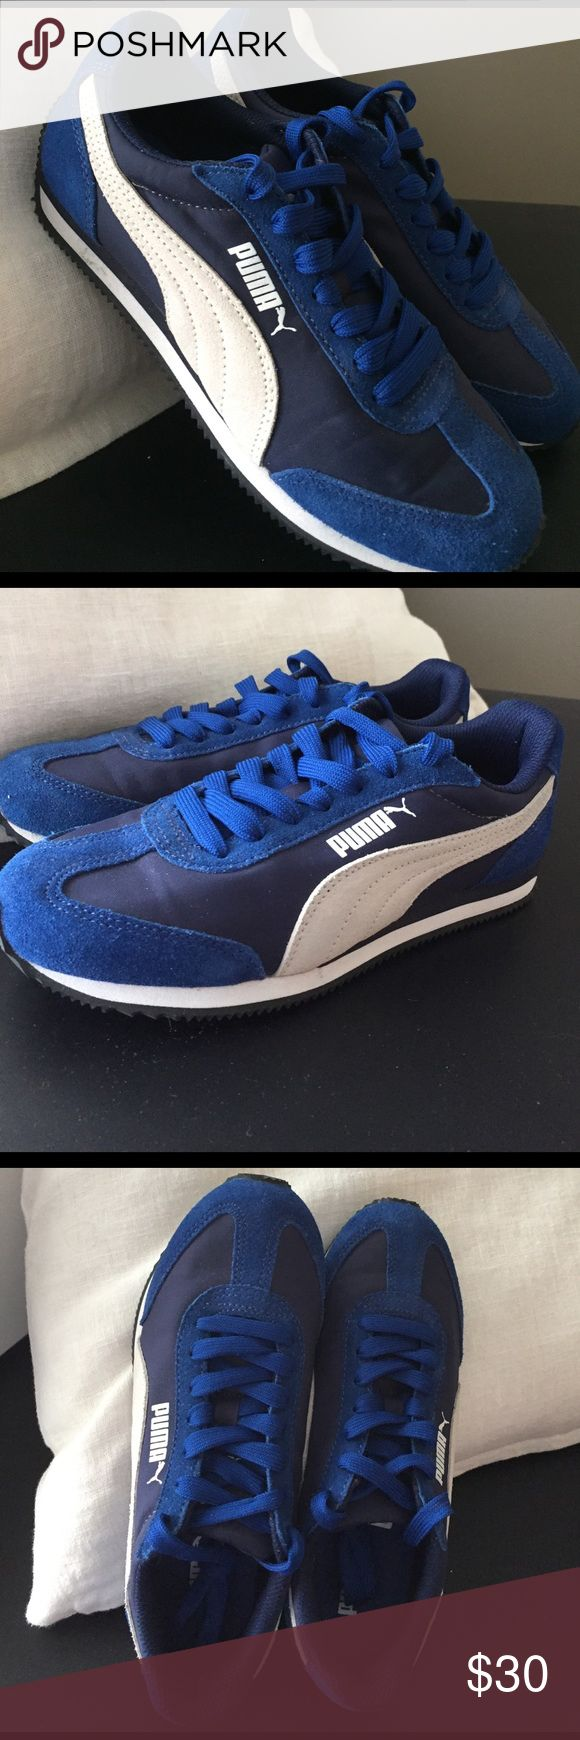 Puma Women's Classic Athletic Shoes Puma classic, worn once due to wrong size. Royal blue suede on navy nylon with white suede trim. Puma Shoes Athletic Shoes